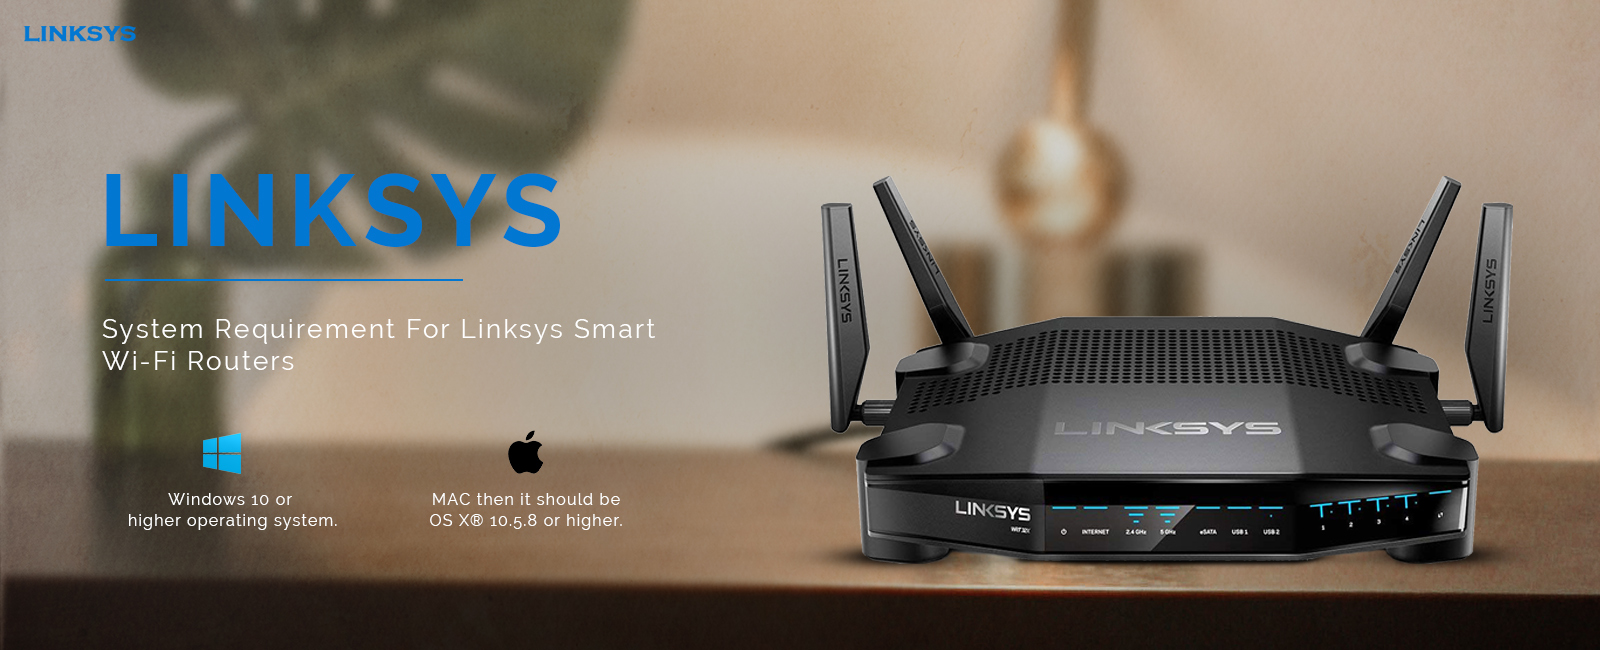 System Requirement Linksys Smart Wi-Fi Routers